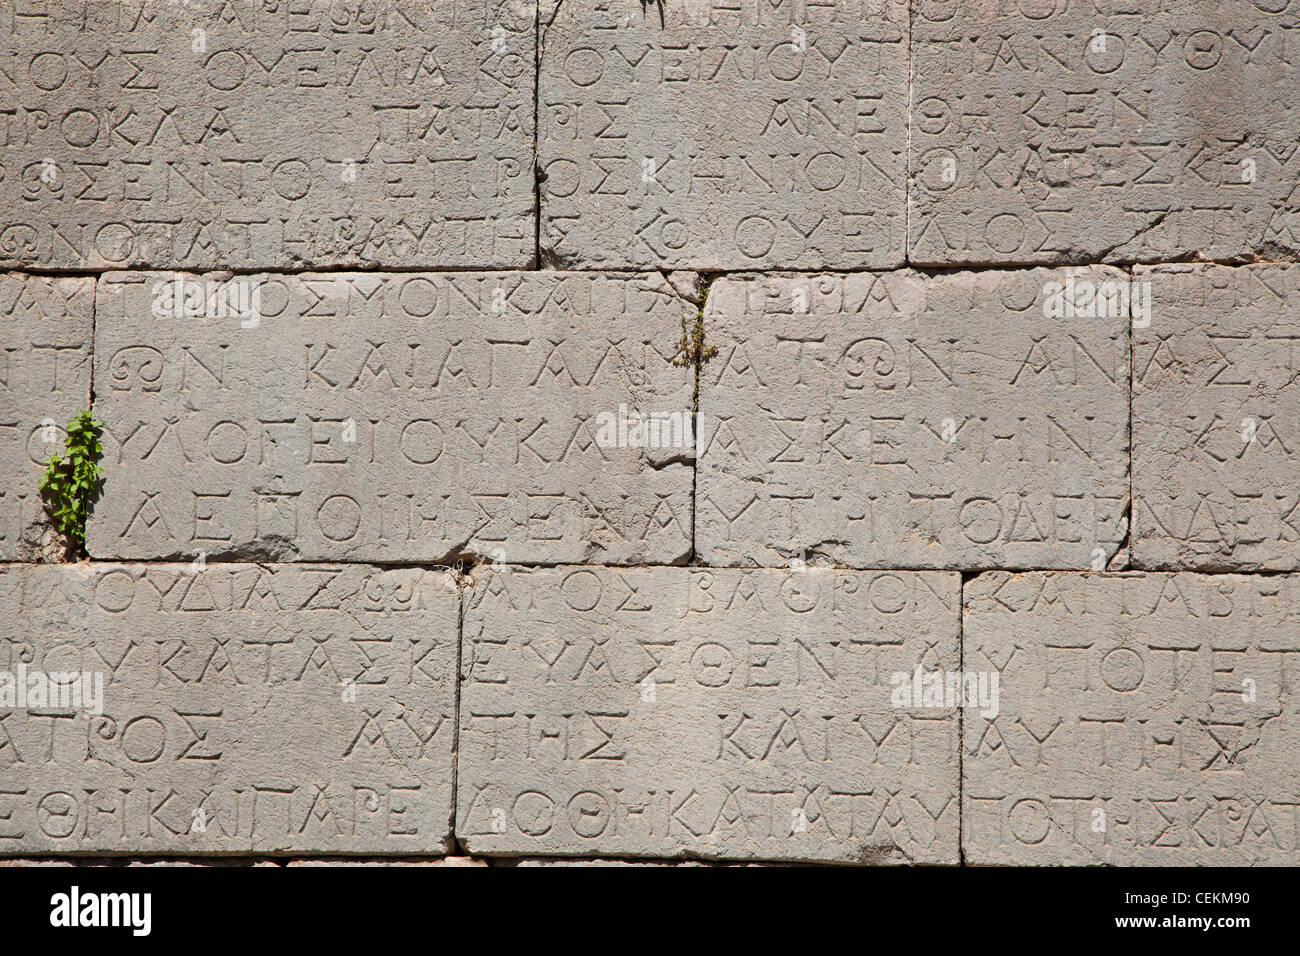 Turkey, Patara, Theater, Relief with Greek Script - Stock Image